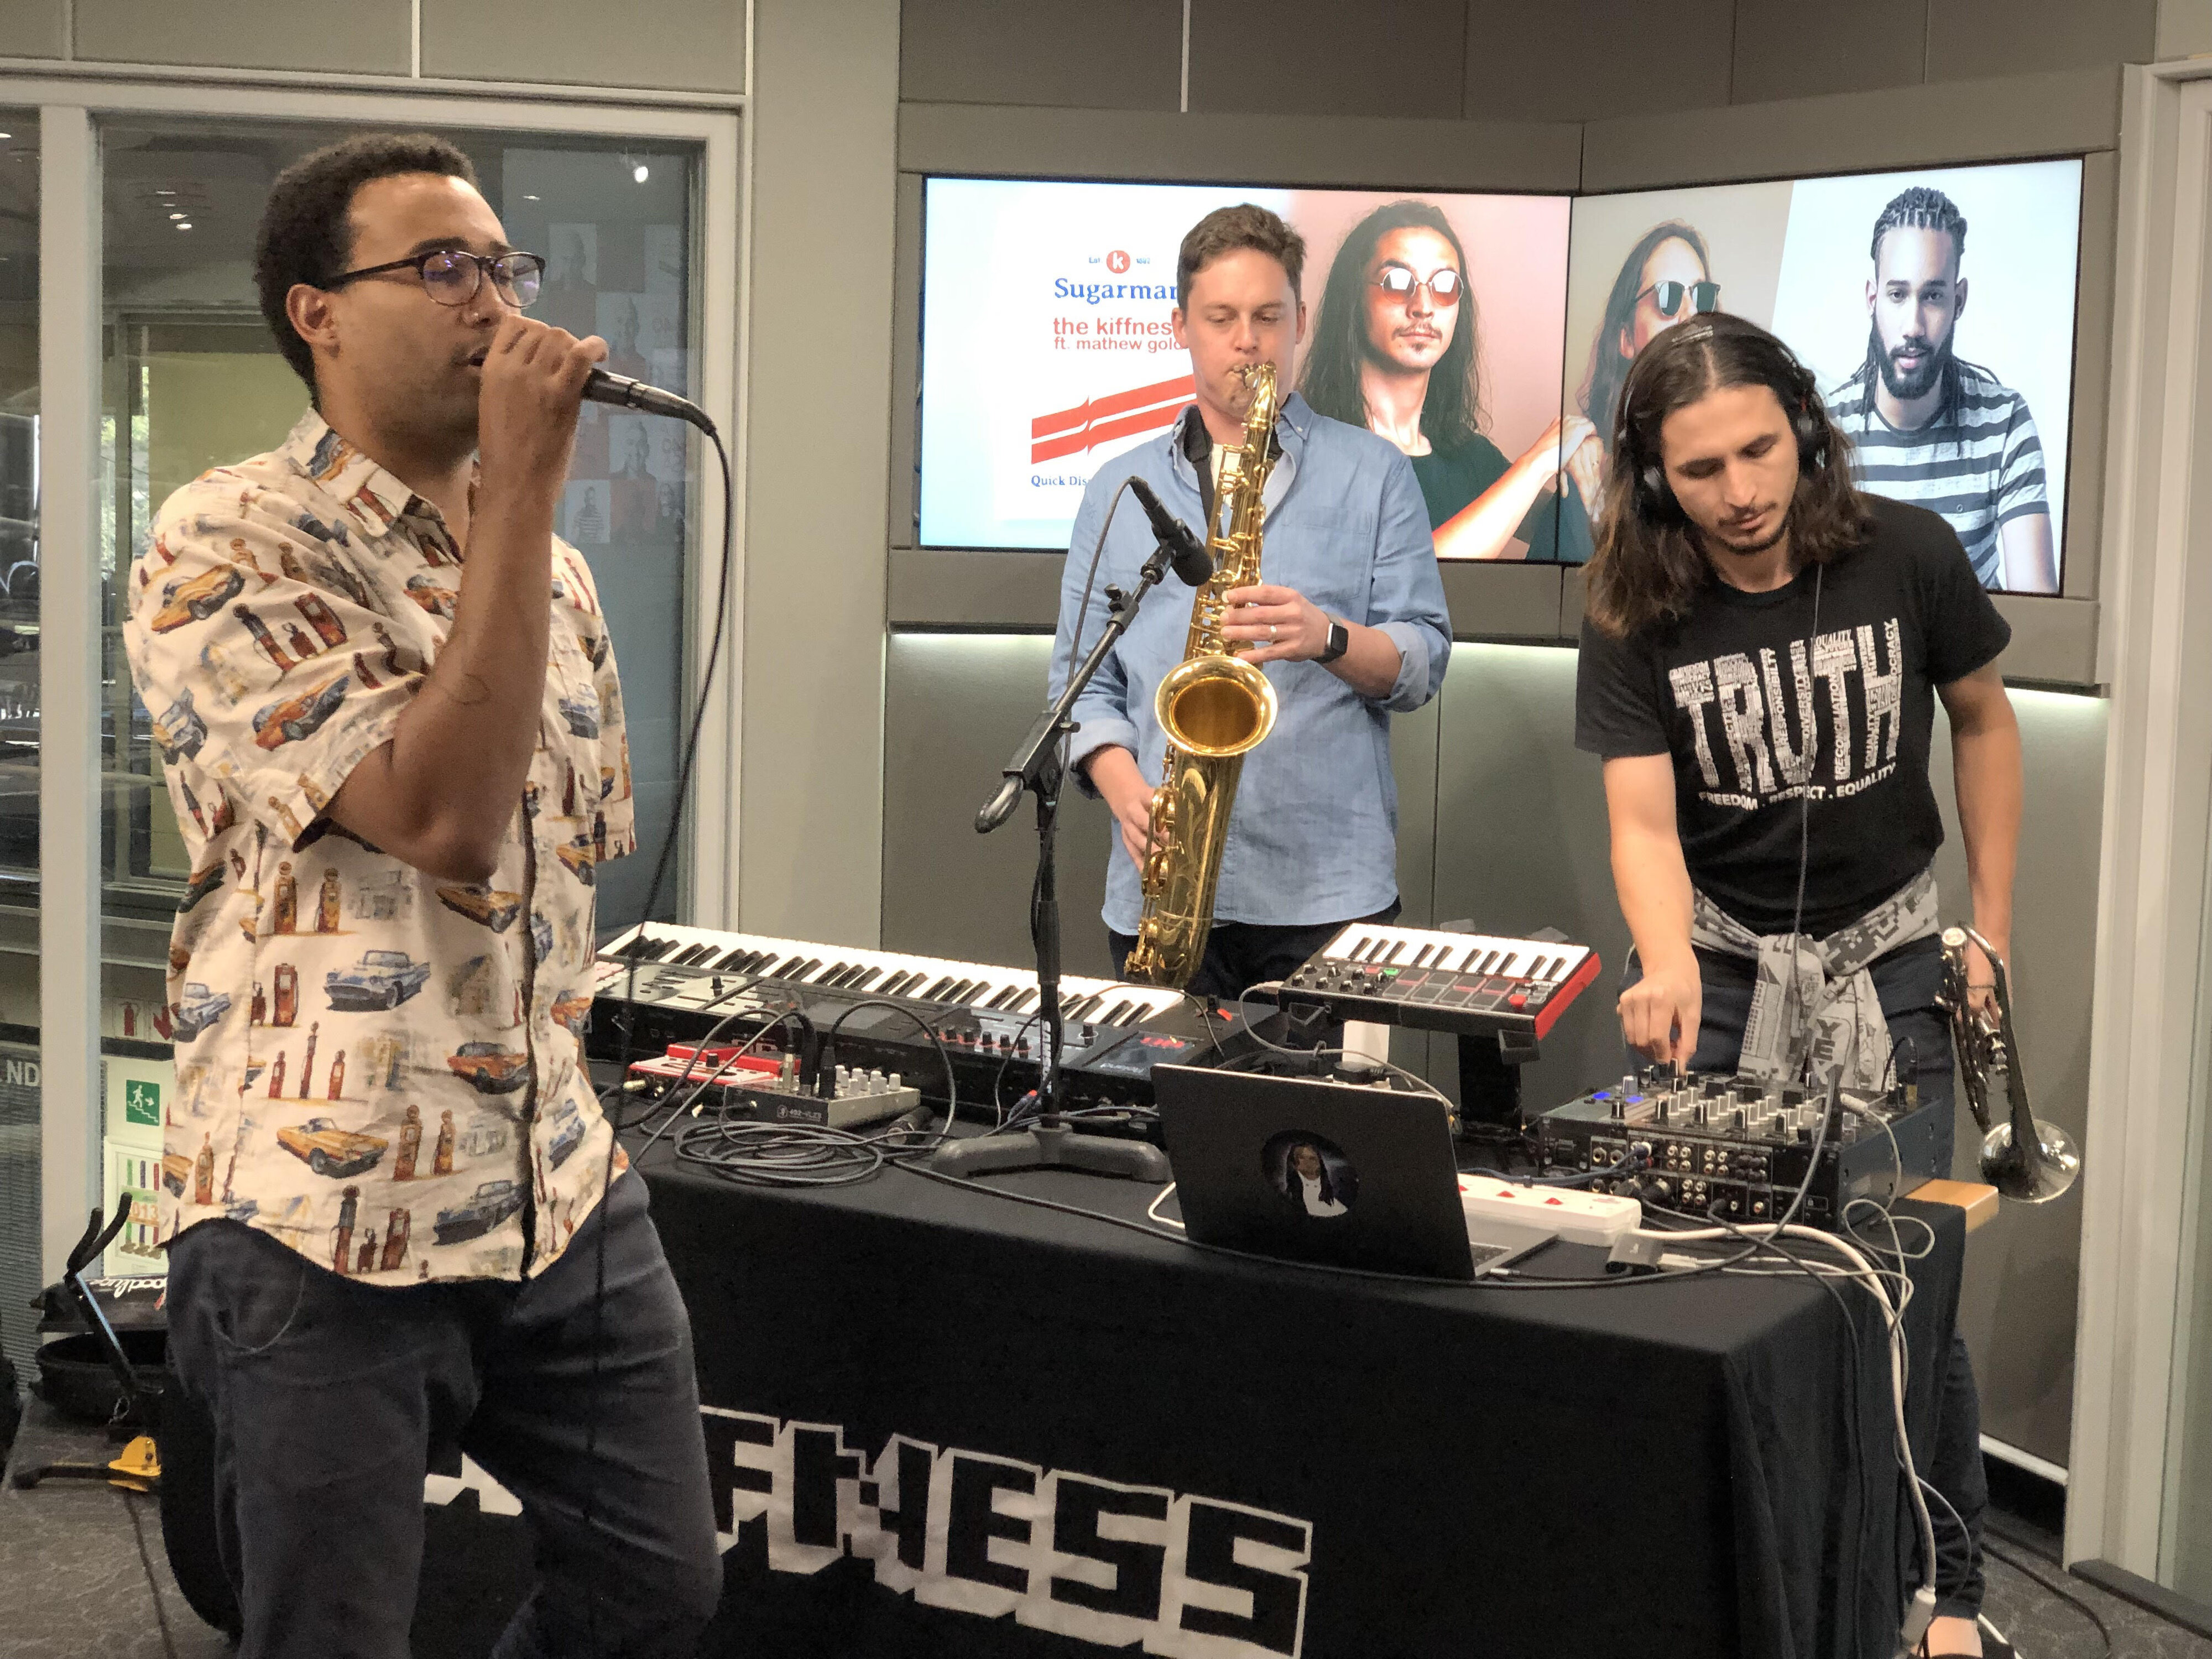 EXCLUSIVE: The Kiffness ft Mathew Gold perform 'Sugarman' live on the #CokeTop40CT